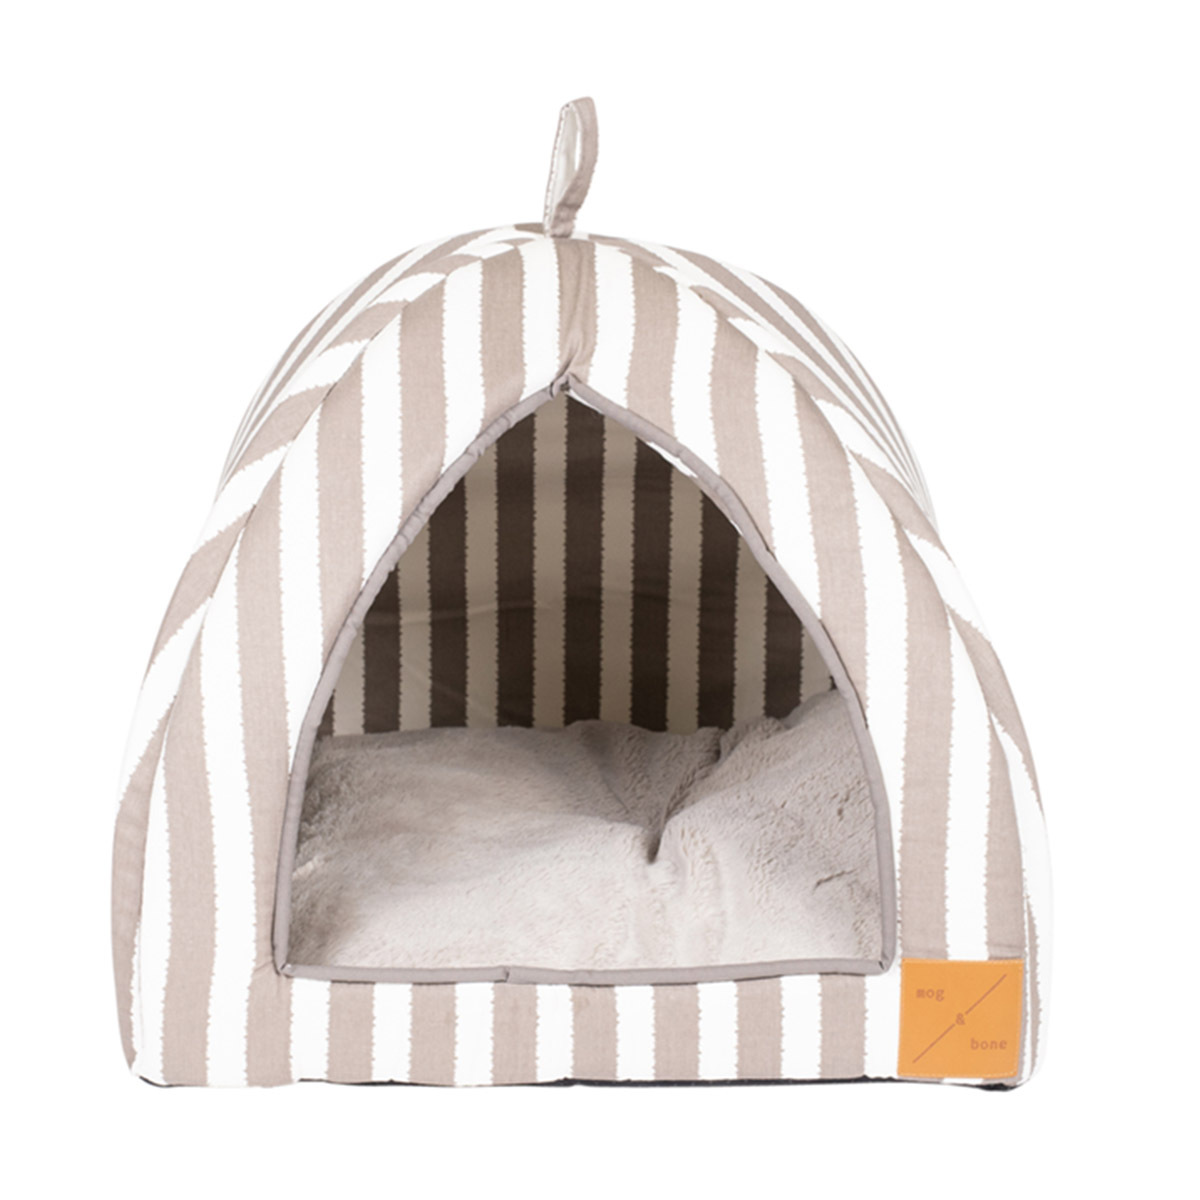 Mog & Bone Cat Igloo Bed with Fleecy Cushion - Latte Hamptons Stripe image 0